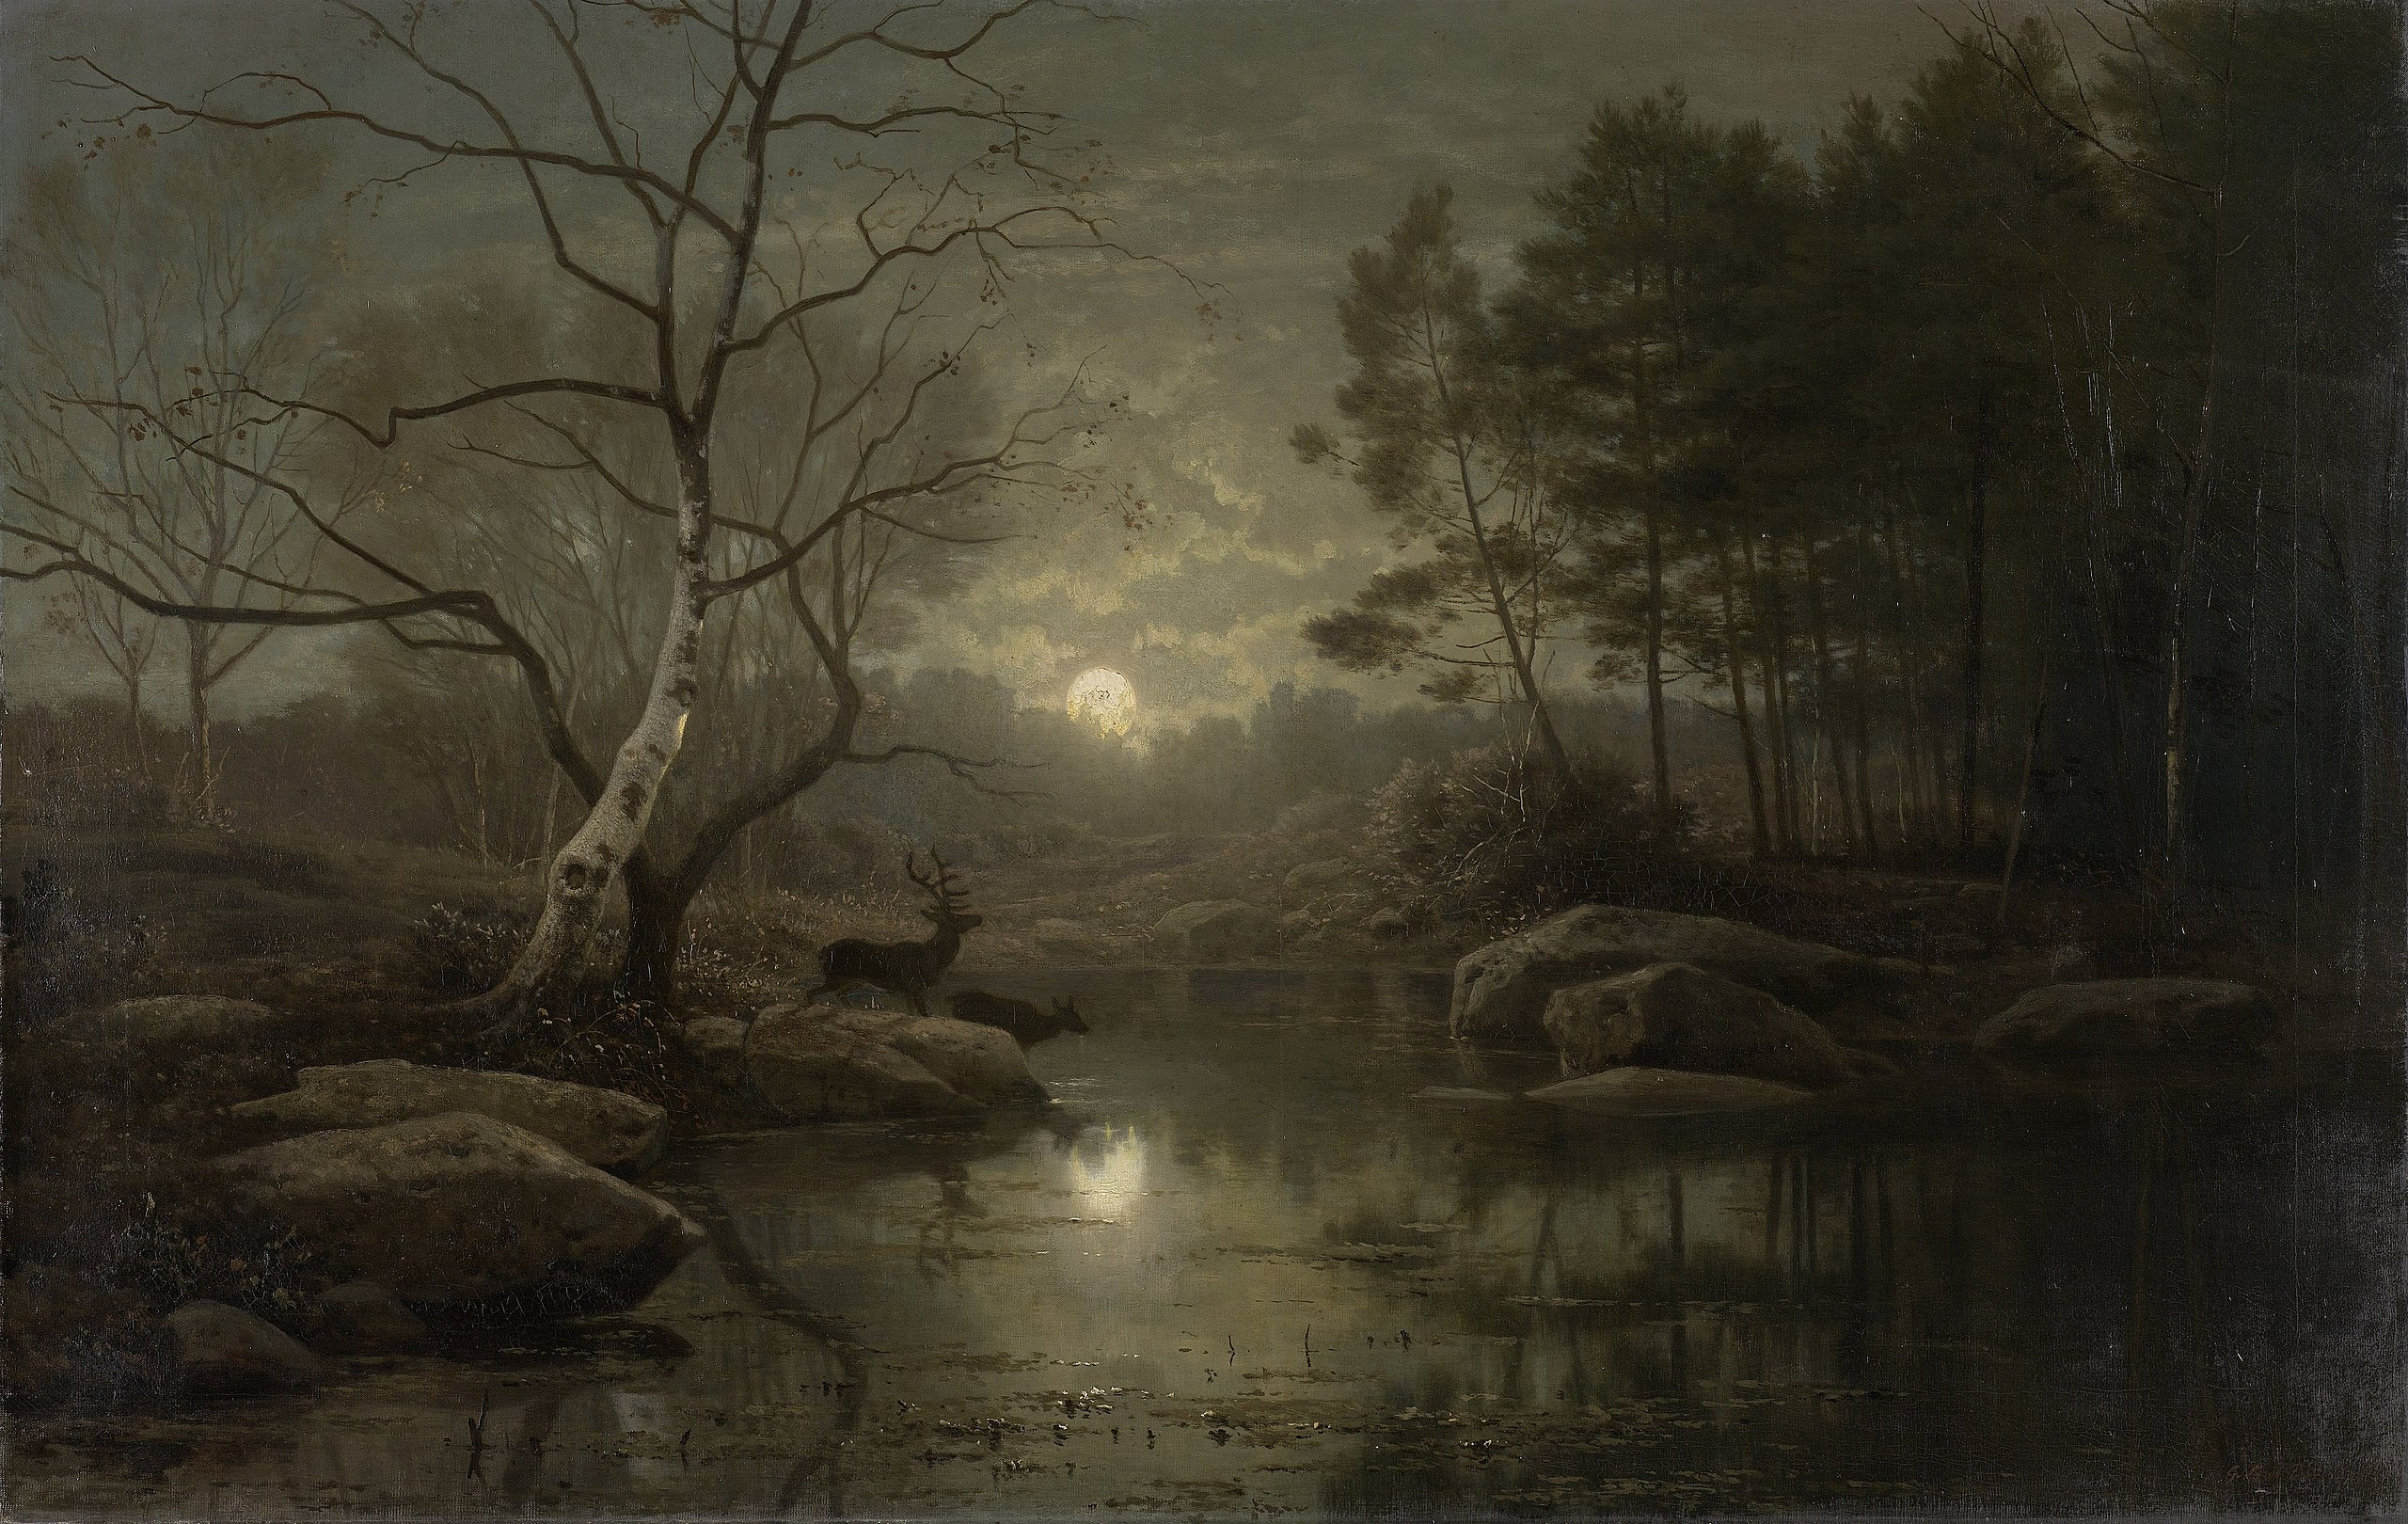 'more co 2 can be sequestered synergistically in the products or wood energy and landscape together than in the unharvested landscape. File Forest Landscape In The Moonlight By Georg Eduard Otto Saal Rijksmuseum Amsterdam Sk A 1827 Jpg Wikimedia Commons